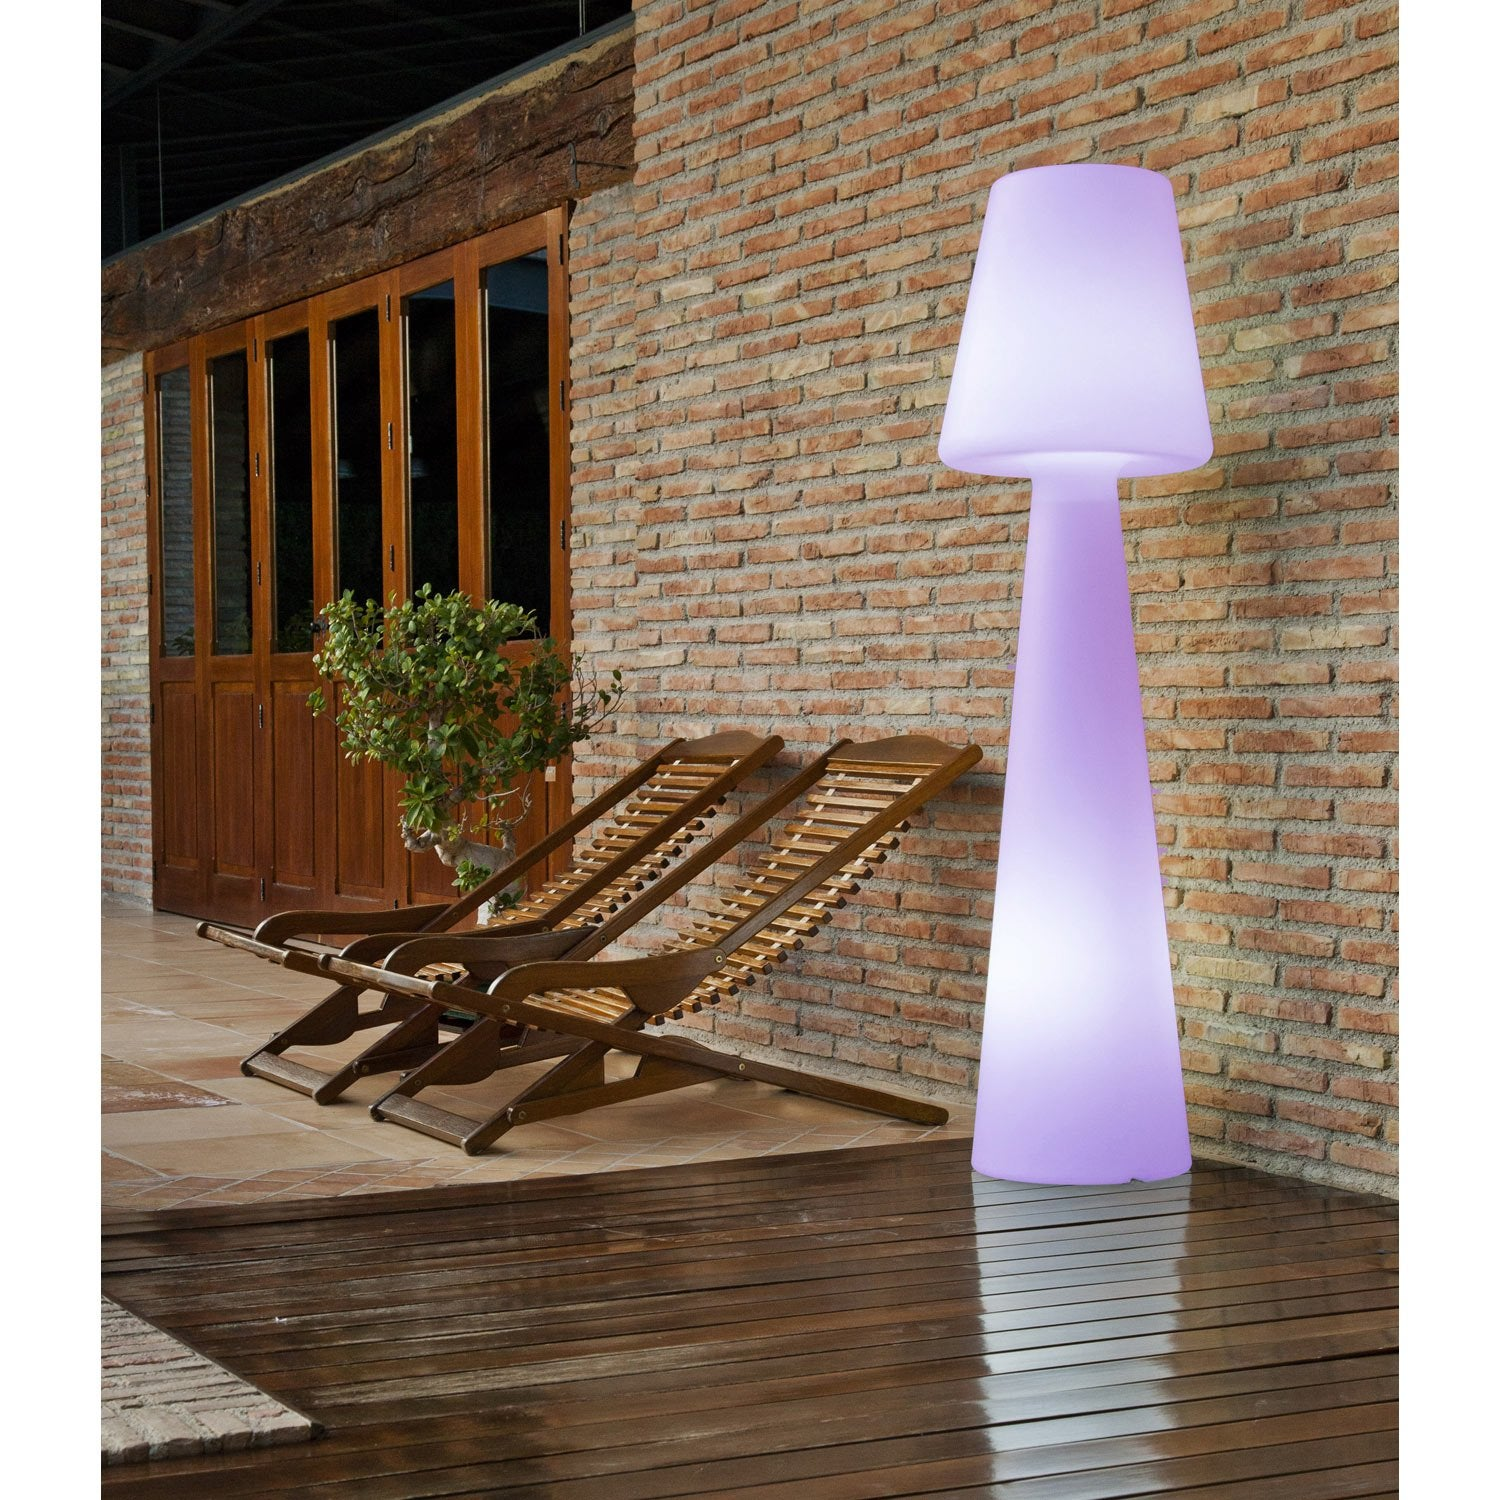 Lampadaire 165 cm led int gr e 2 5 w 165 lm couleurs for Lampadaire exterieur design